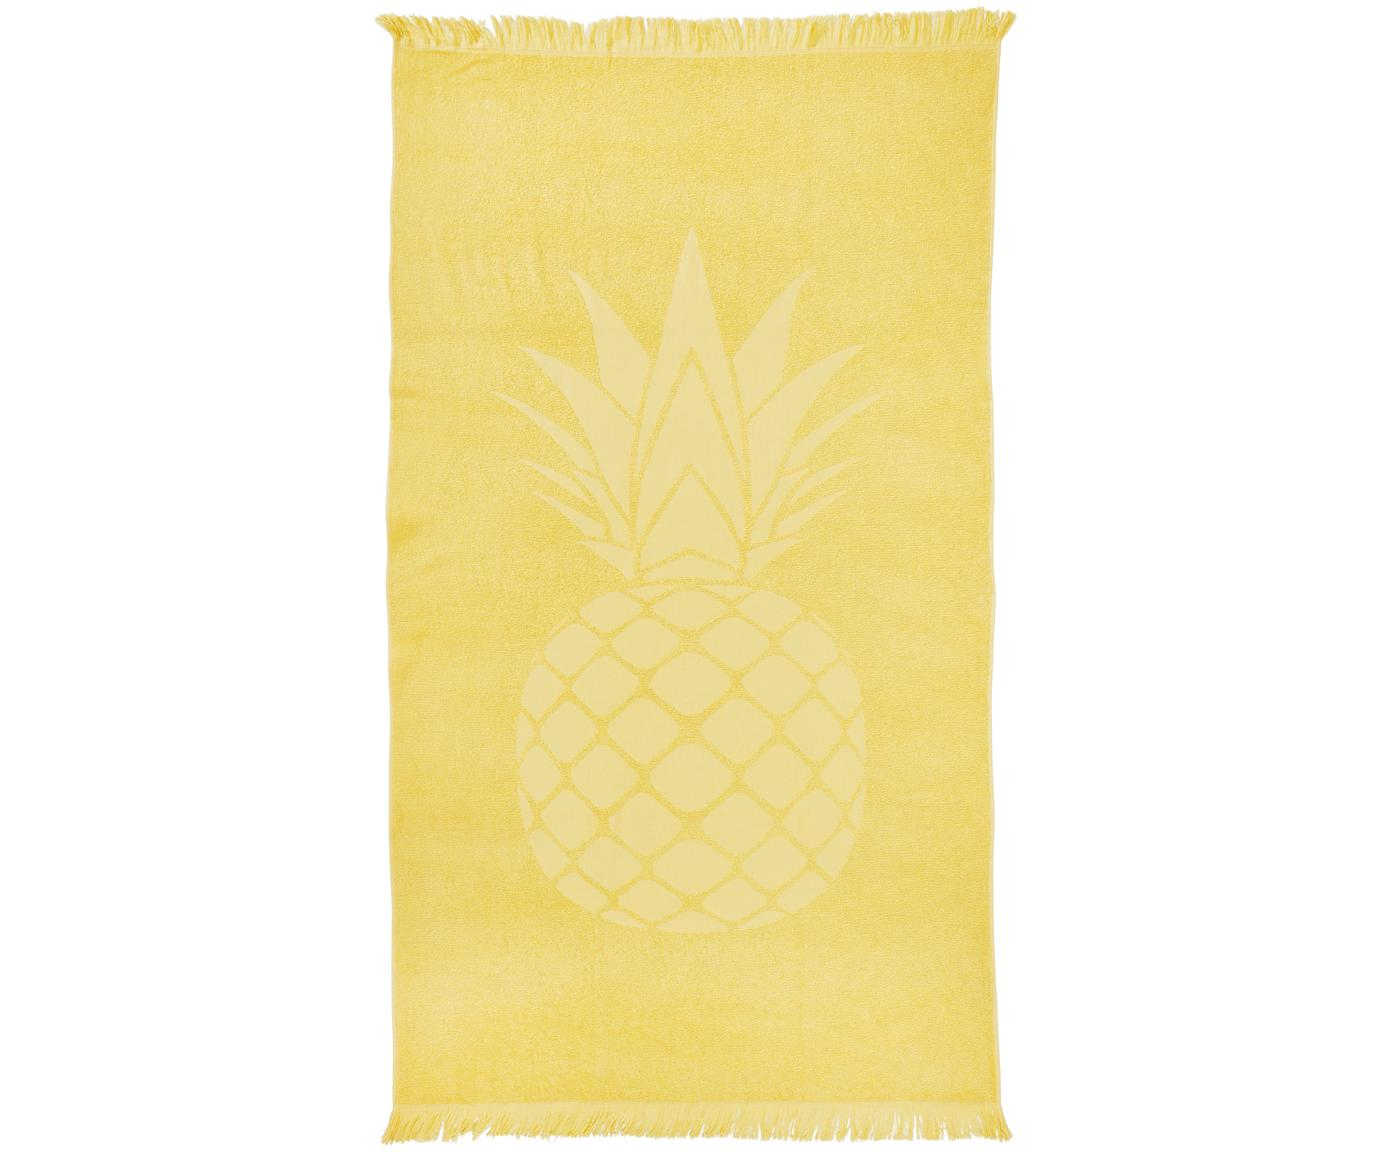 Toalla de playa Capri Pineapple, Amarillo, An 90 x L 160 cm